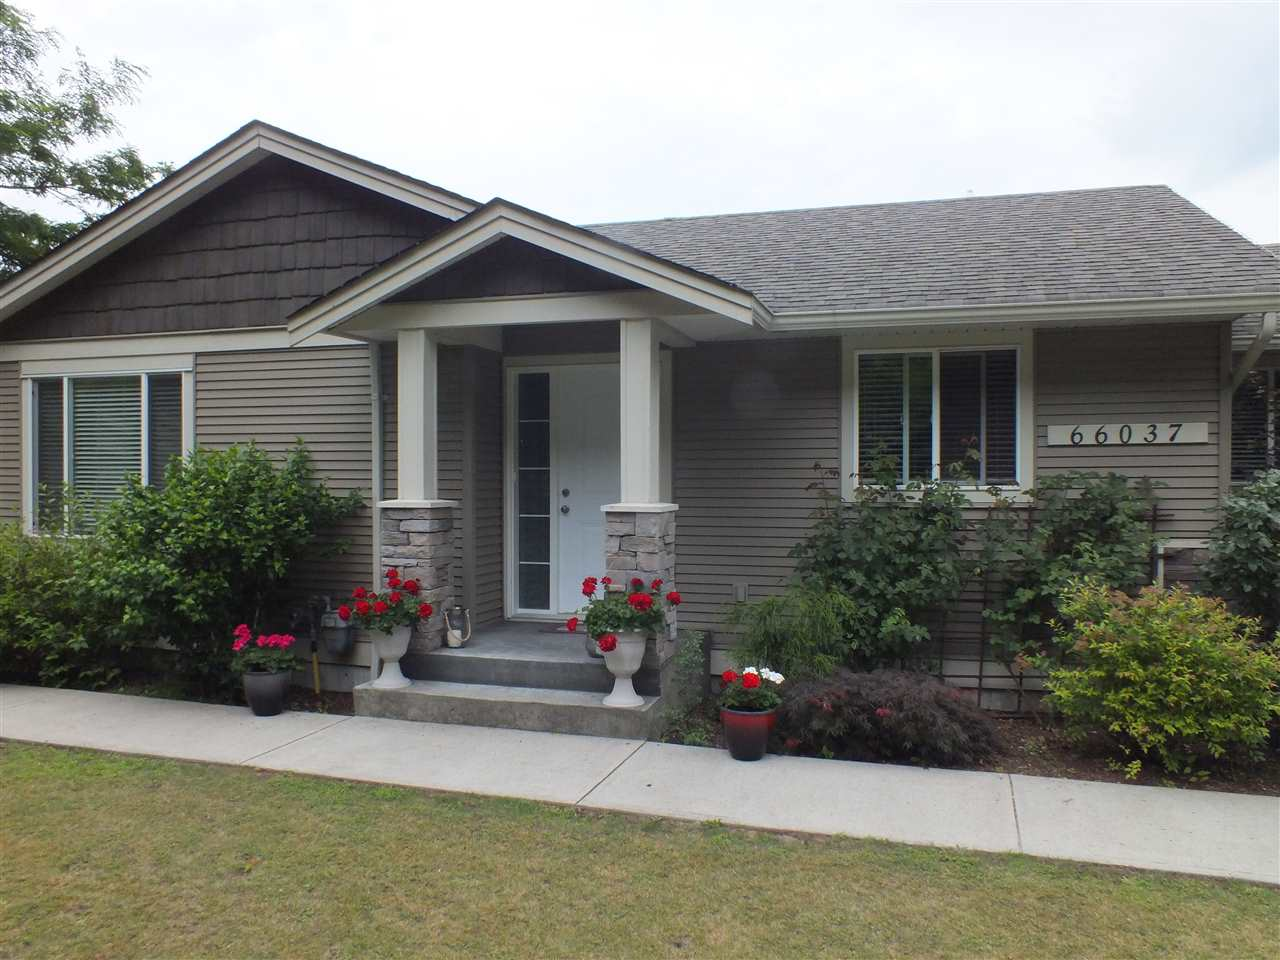 This newer 4 bedroom, 2 bath rancher is situated on a large .22 acre lot and is located less than a 2 minute walk to the beach at Kawkawa Lake. The first level has 3 bdrms, 1 bath,  the lower lever is a self contained 1 bedroom suite with den and full kitchen, great for in-laws, or mortgage helper. One of bigger lots near lake, lots of room to build a nice shop which could have multiple access or  just enjoy the surrounding mountain views sitting on your deck.